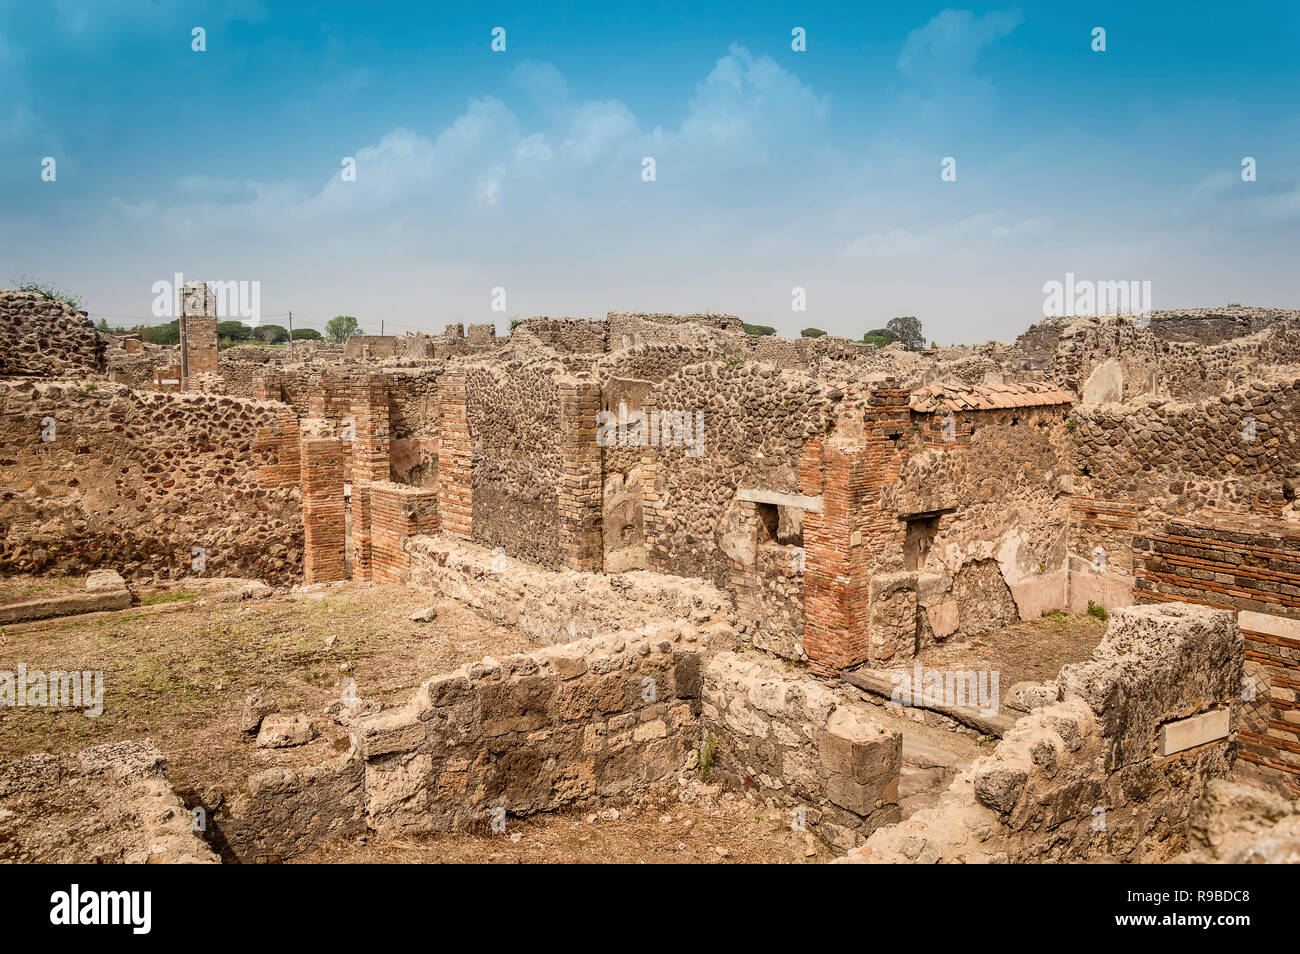 Pompeii ruins. Remains of ancient houses destroyed by eruption of Mount Vesuvius, Italy. Pompeii archaeological site. Stock Photo